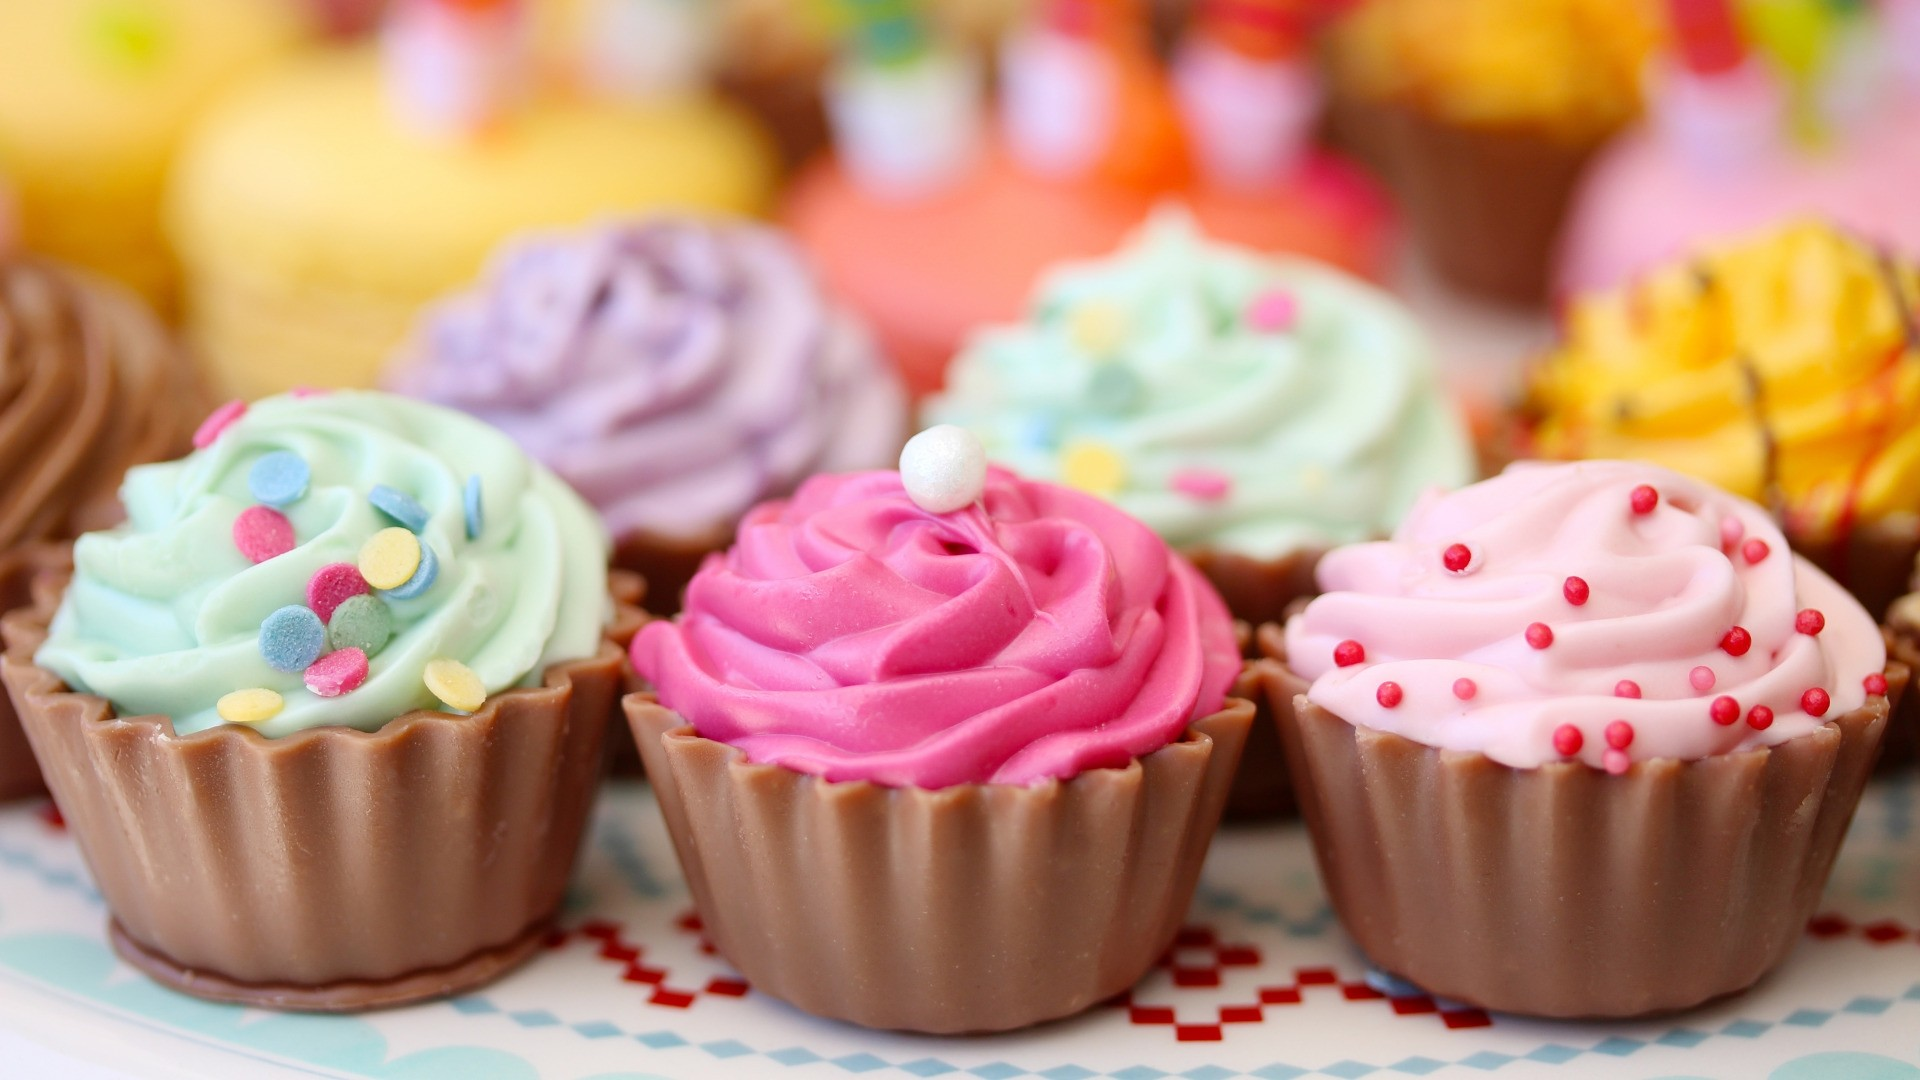 Cupcake Free Wallpaper and Background